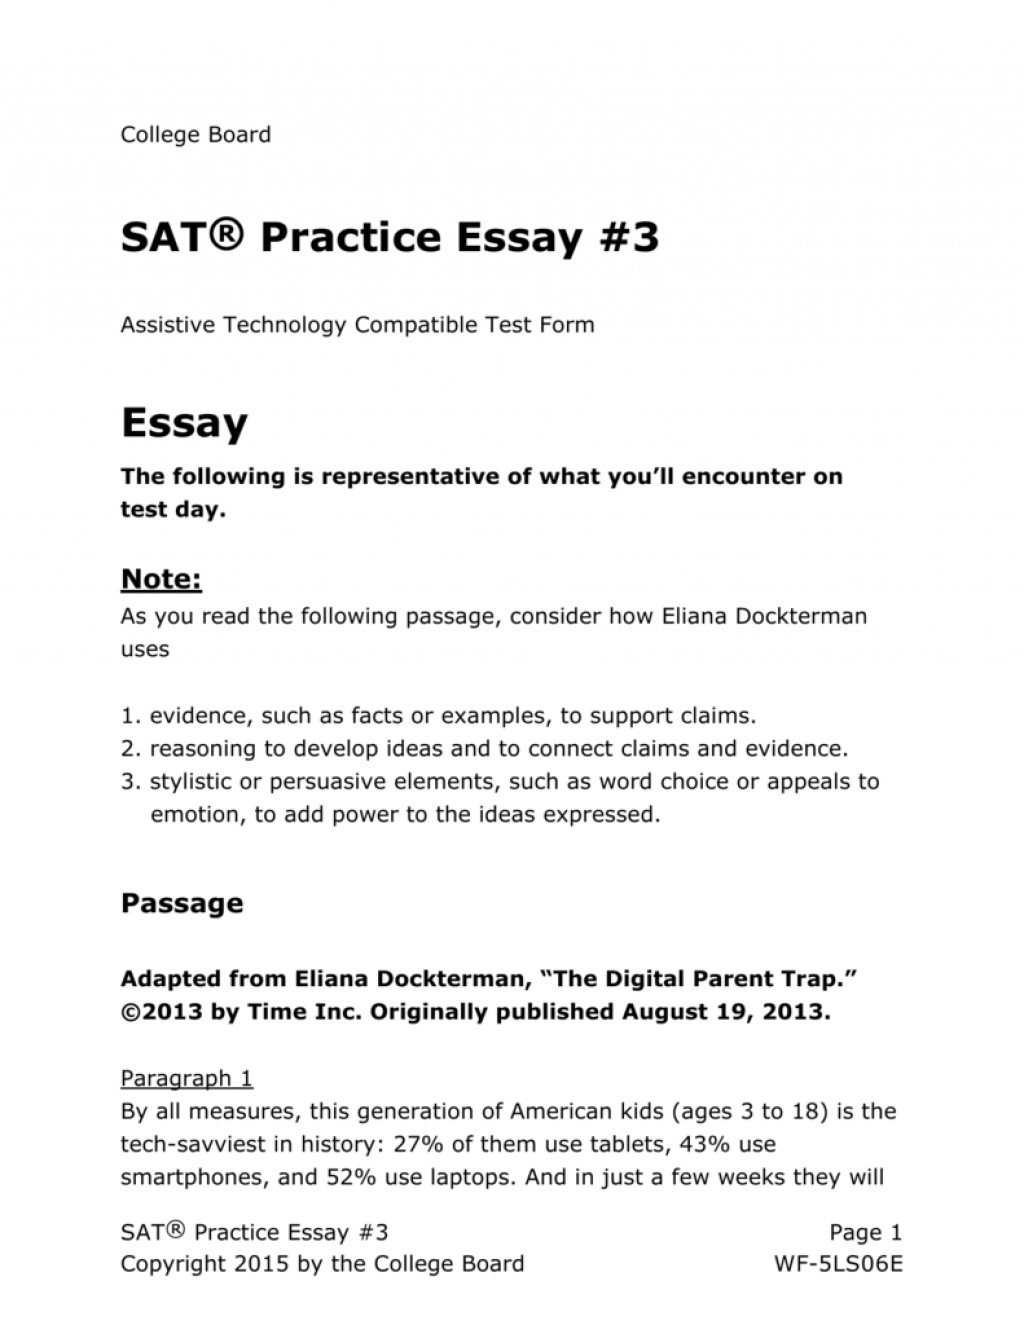 022 Essay Grading Rubric College Board Sat Term Paper Writing Service Sample 008001736 1ssays Ap Language Apush Application Prompts Us History World Unbelievable Act Large